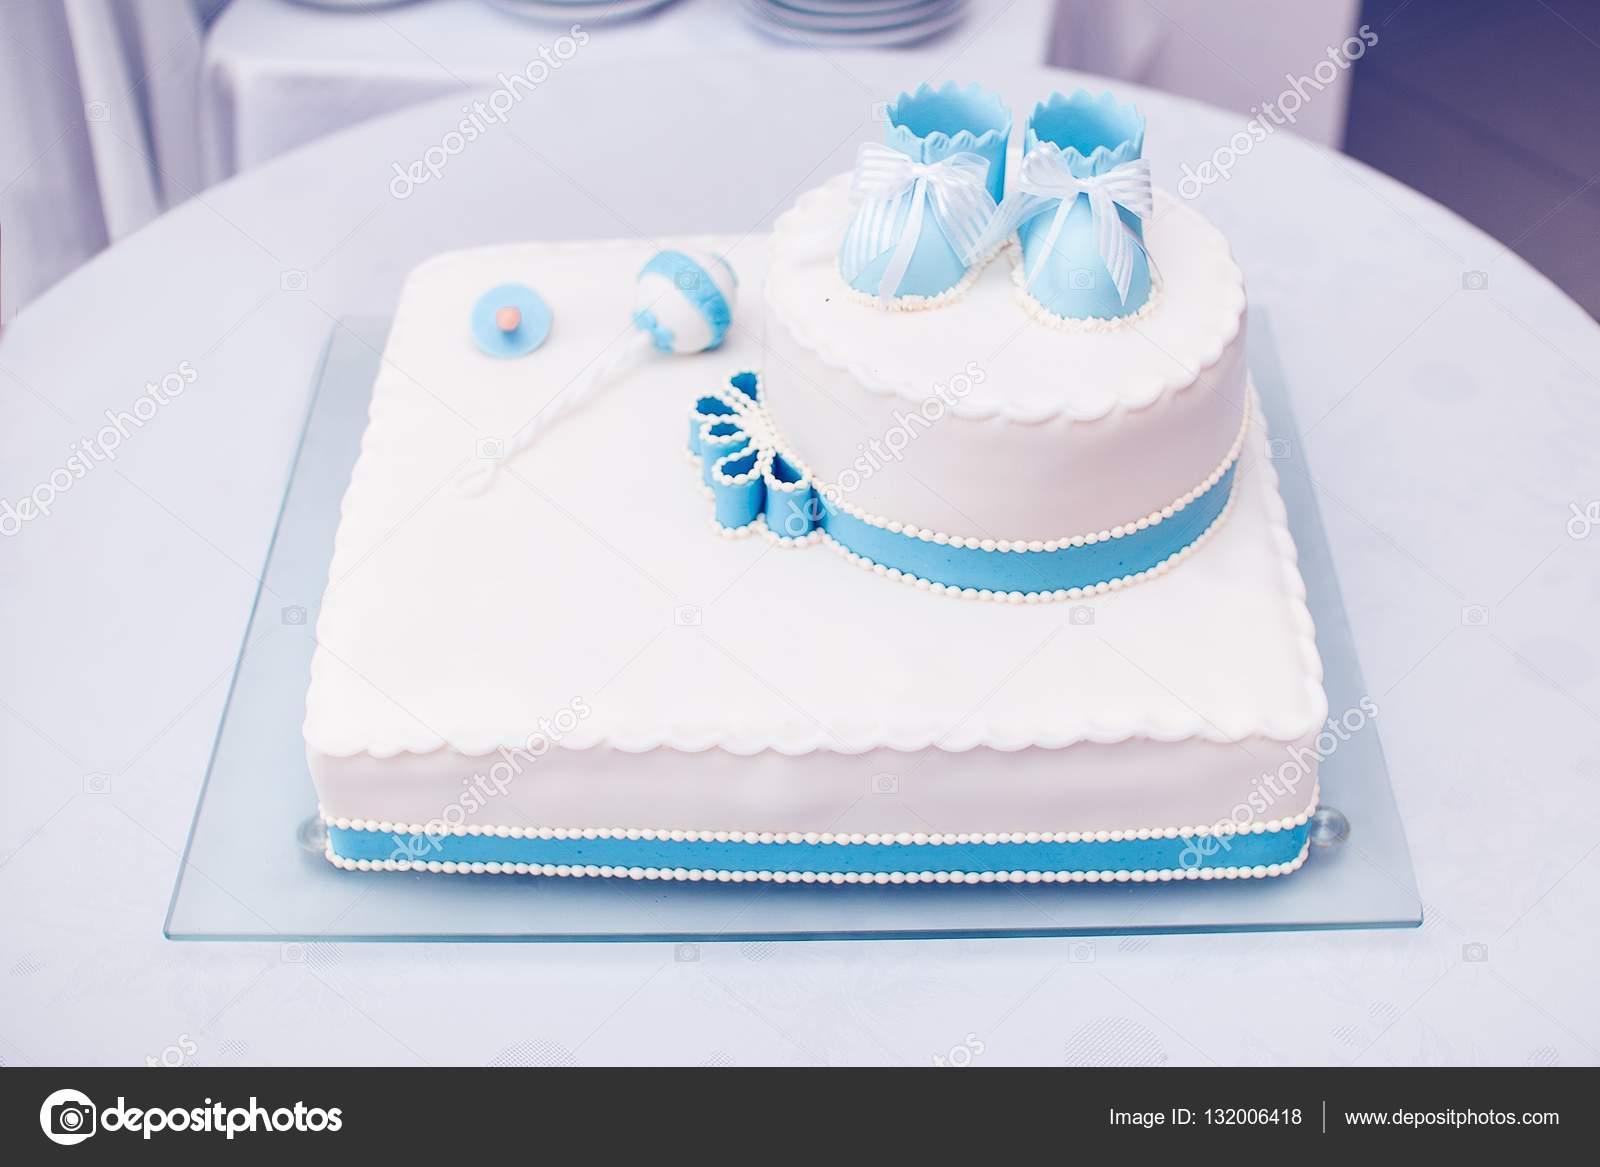 Birthday Cake With Children Shoes On Top Stock Image